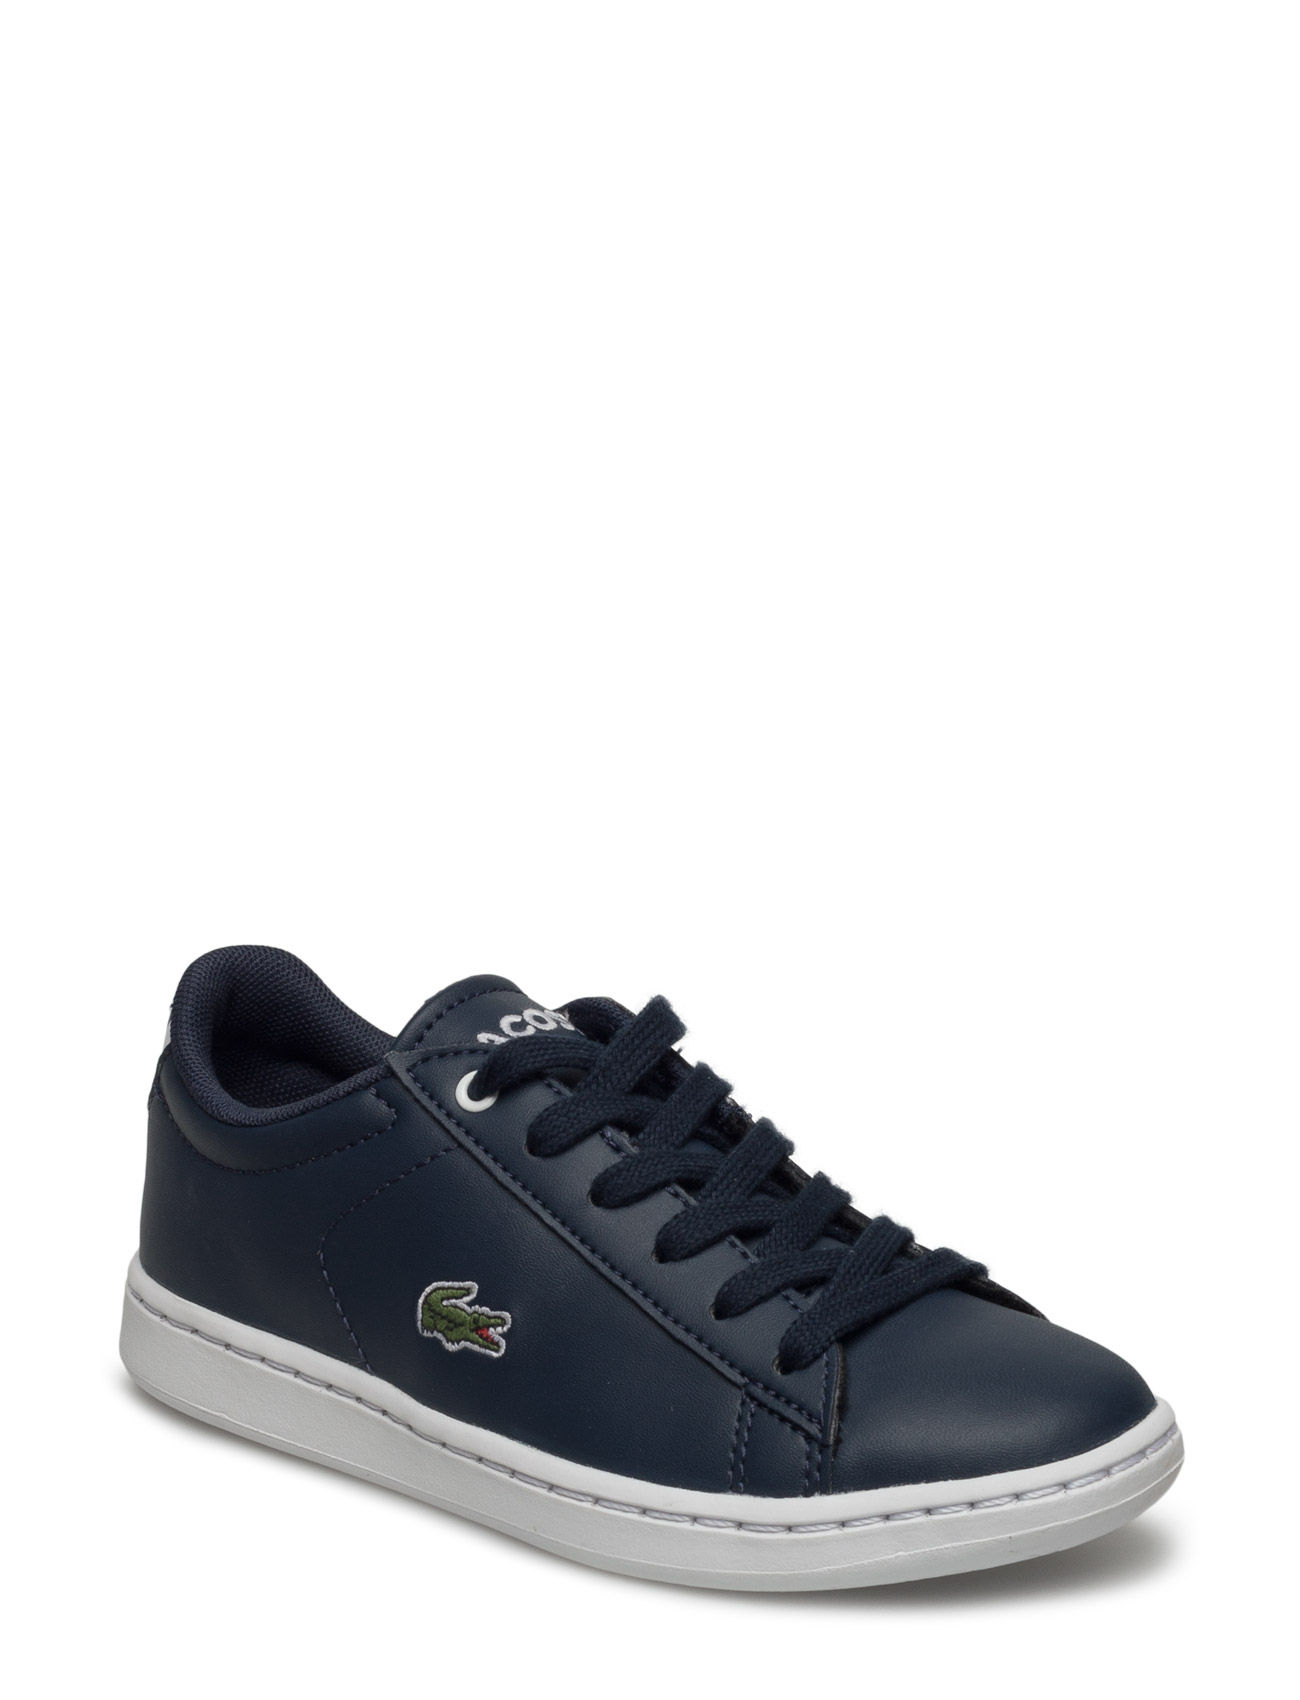 lacoste shoes – Carnaby evo bl 1 fra boozt.com dk